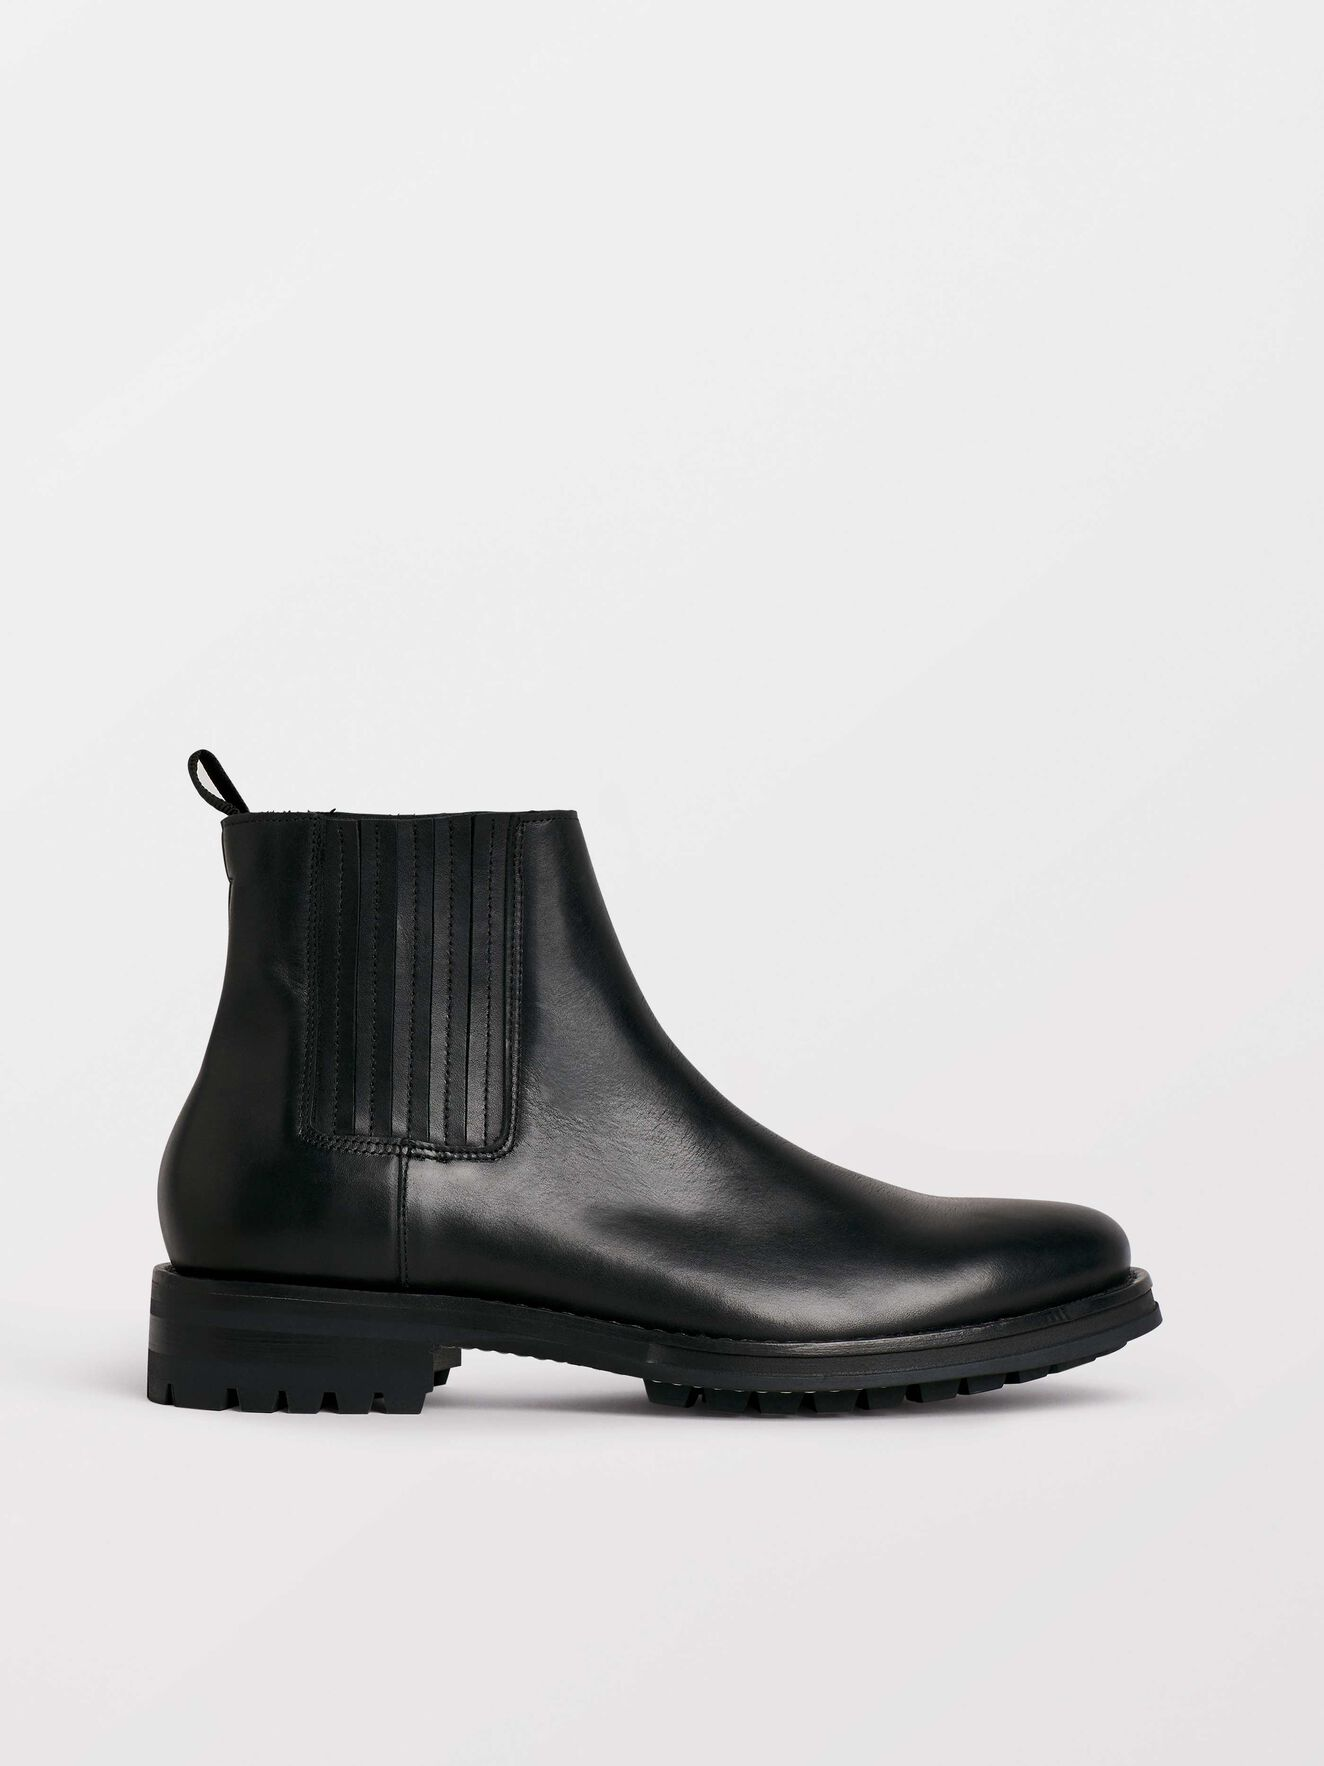 Bonnist Boots in Black from Tiger of Sweden